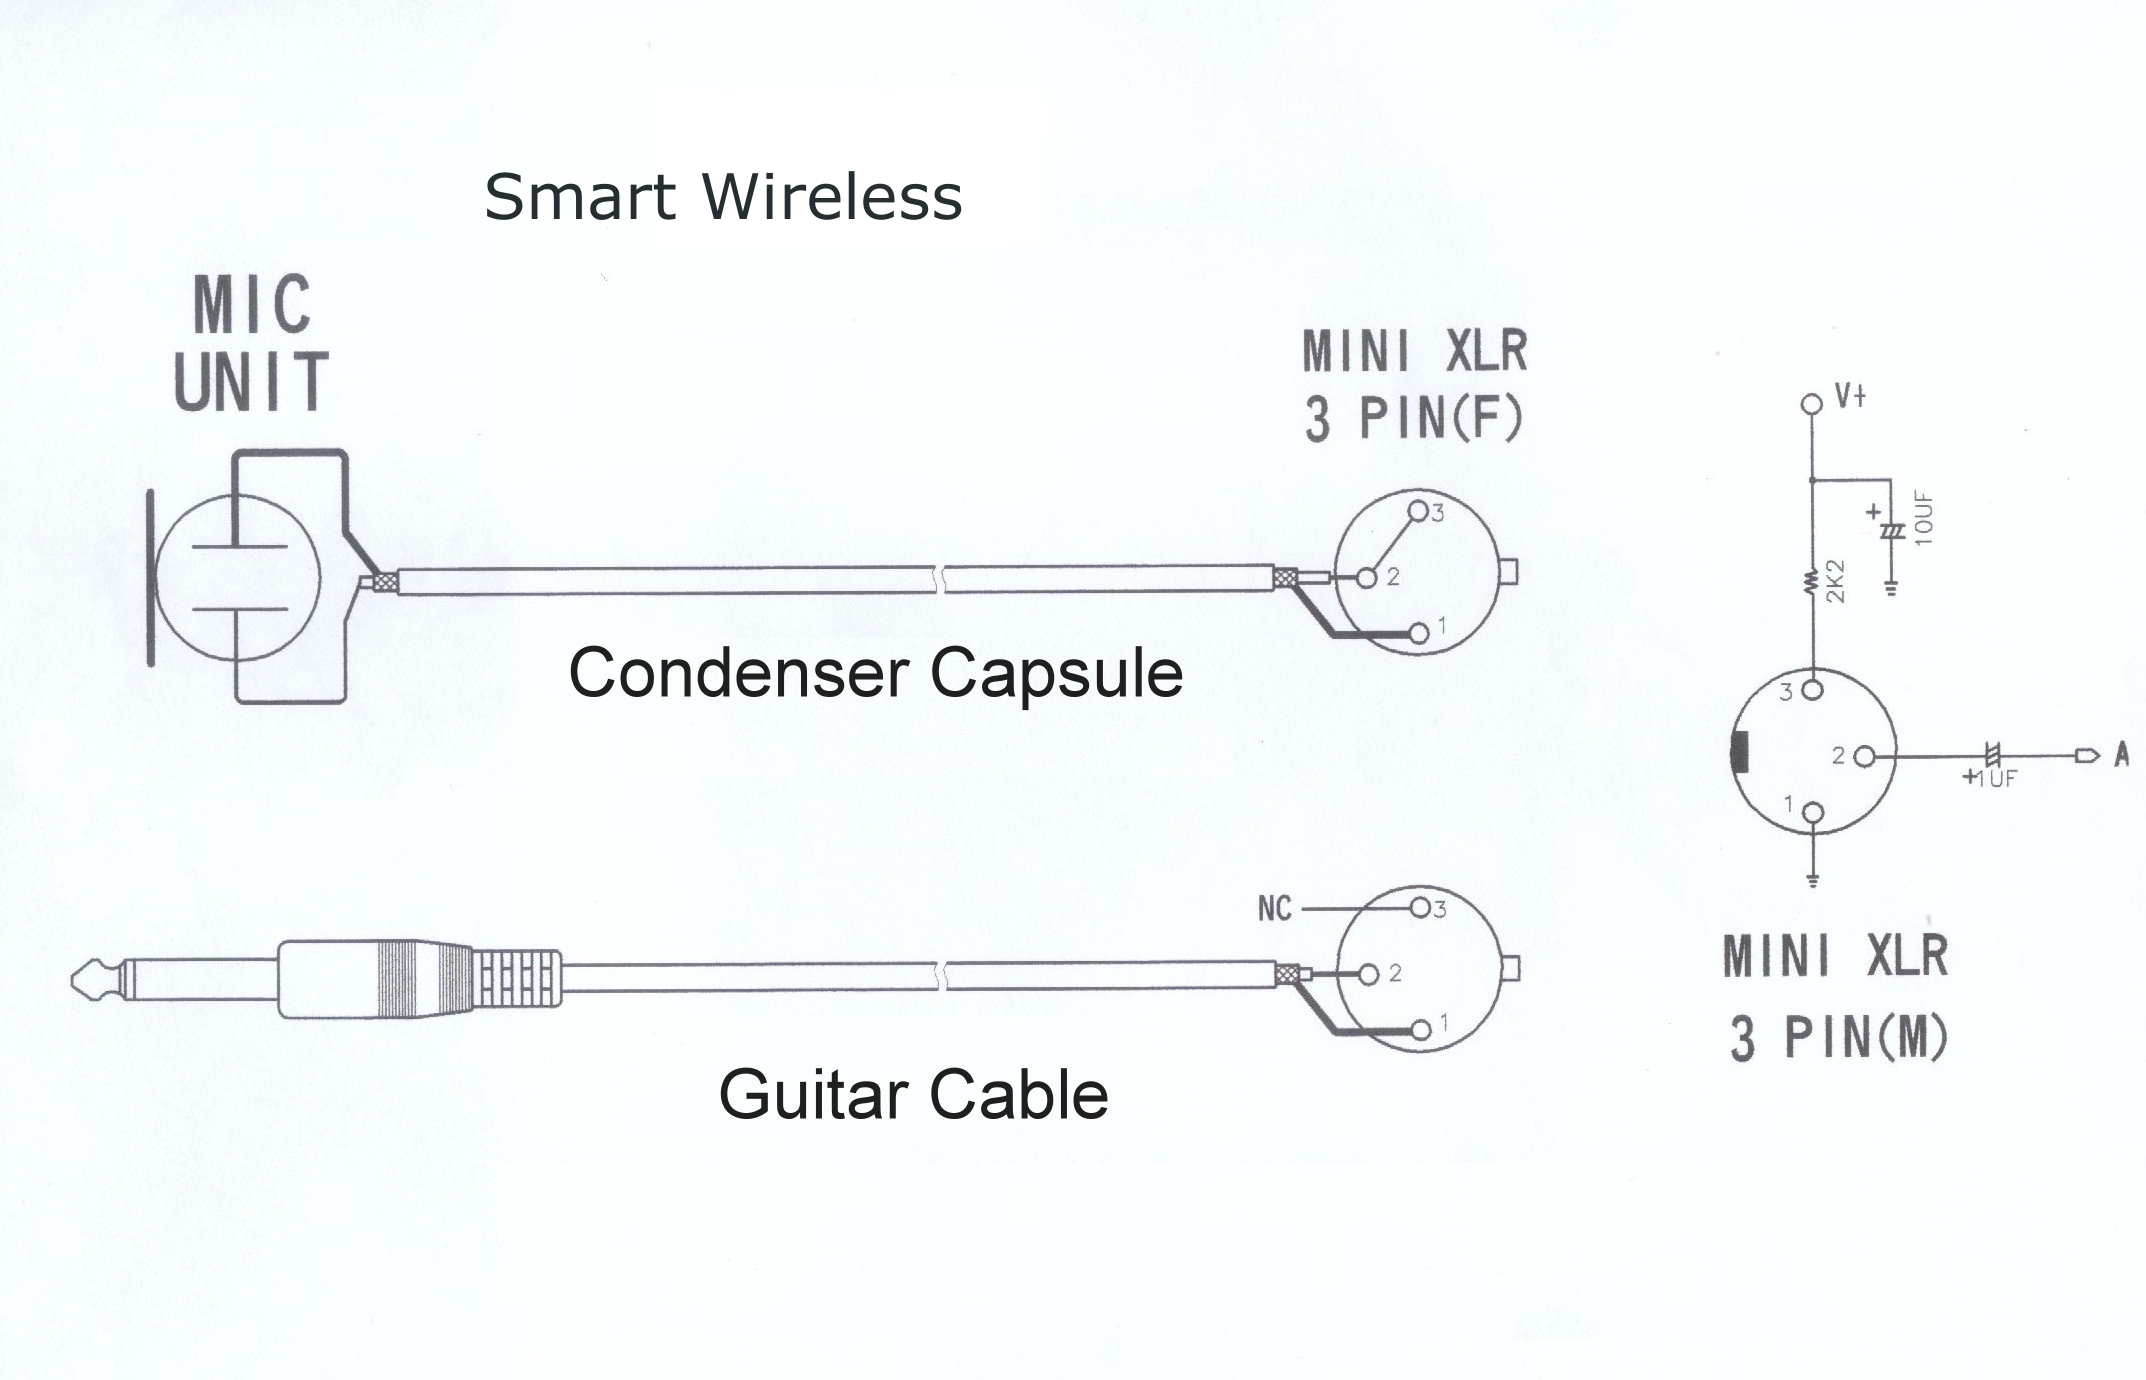 xlr balanced phone unbalanced jpg XLR Microphone Cable Wiring Diagram 4 Pin XLR Pinout shure 4 pin mini xlr wiring diagram